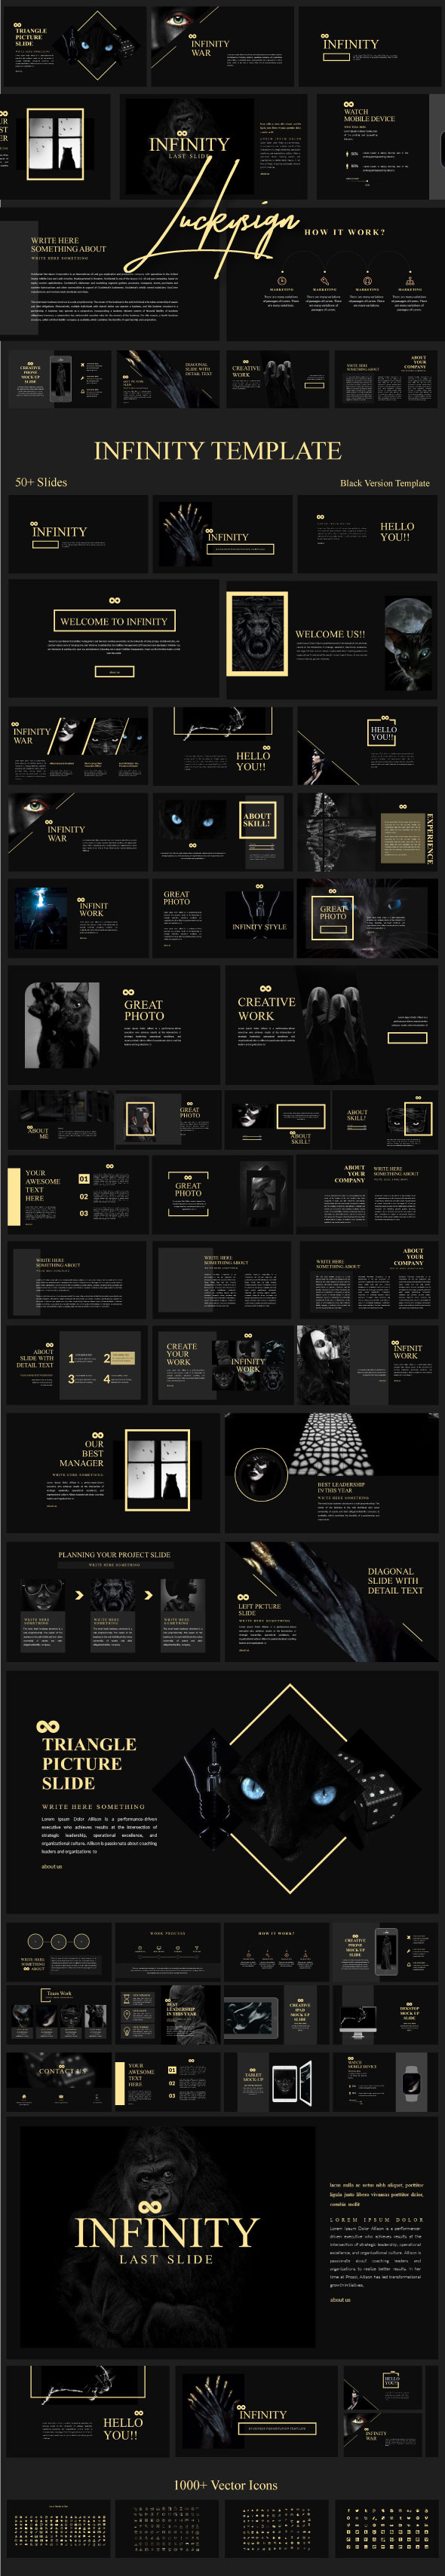 Infinity - Presentation Templates - Business PowerPoint Templates